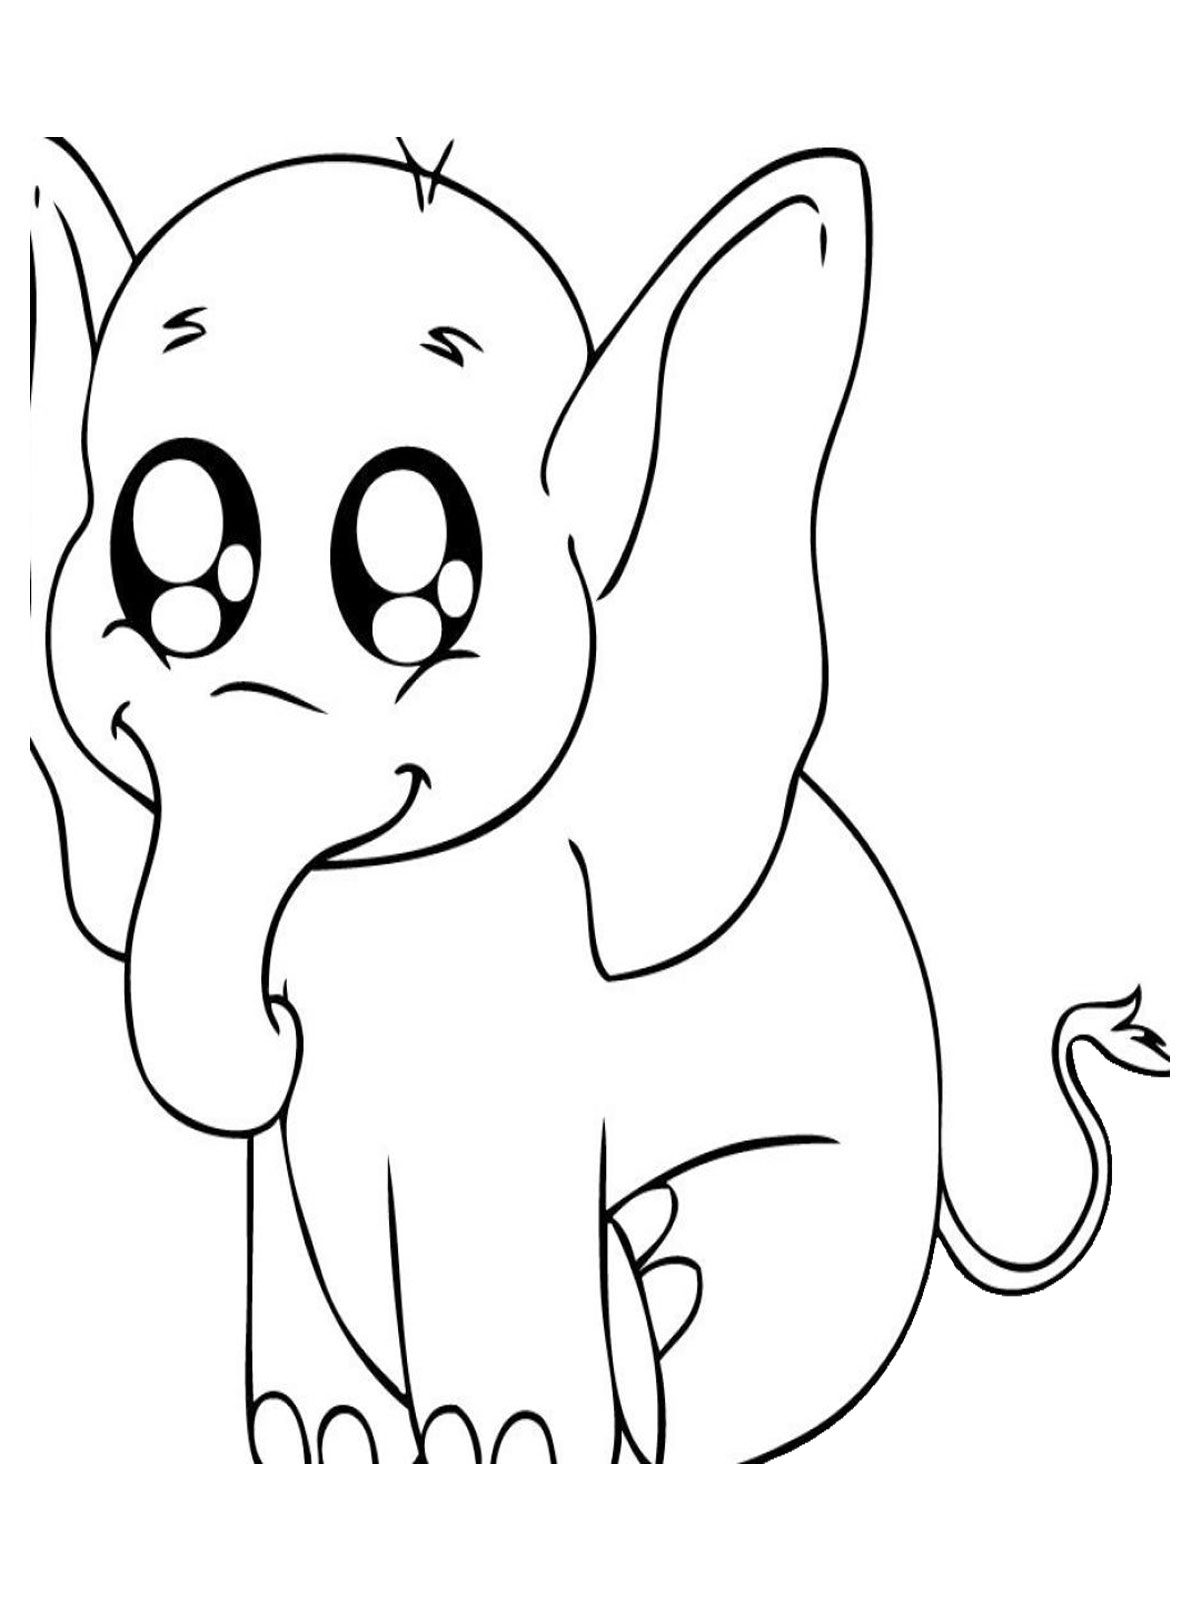 It is a photo of Accomplished Elephant Coloring Pages Printable